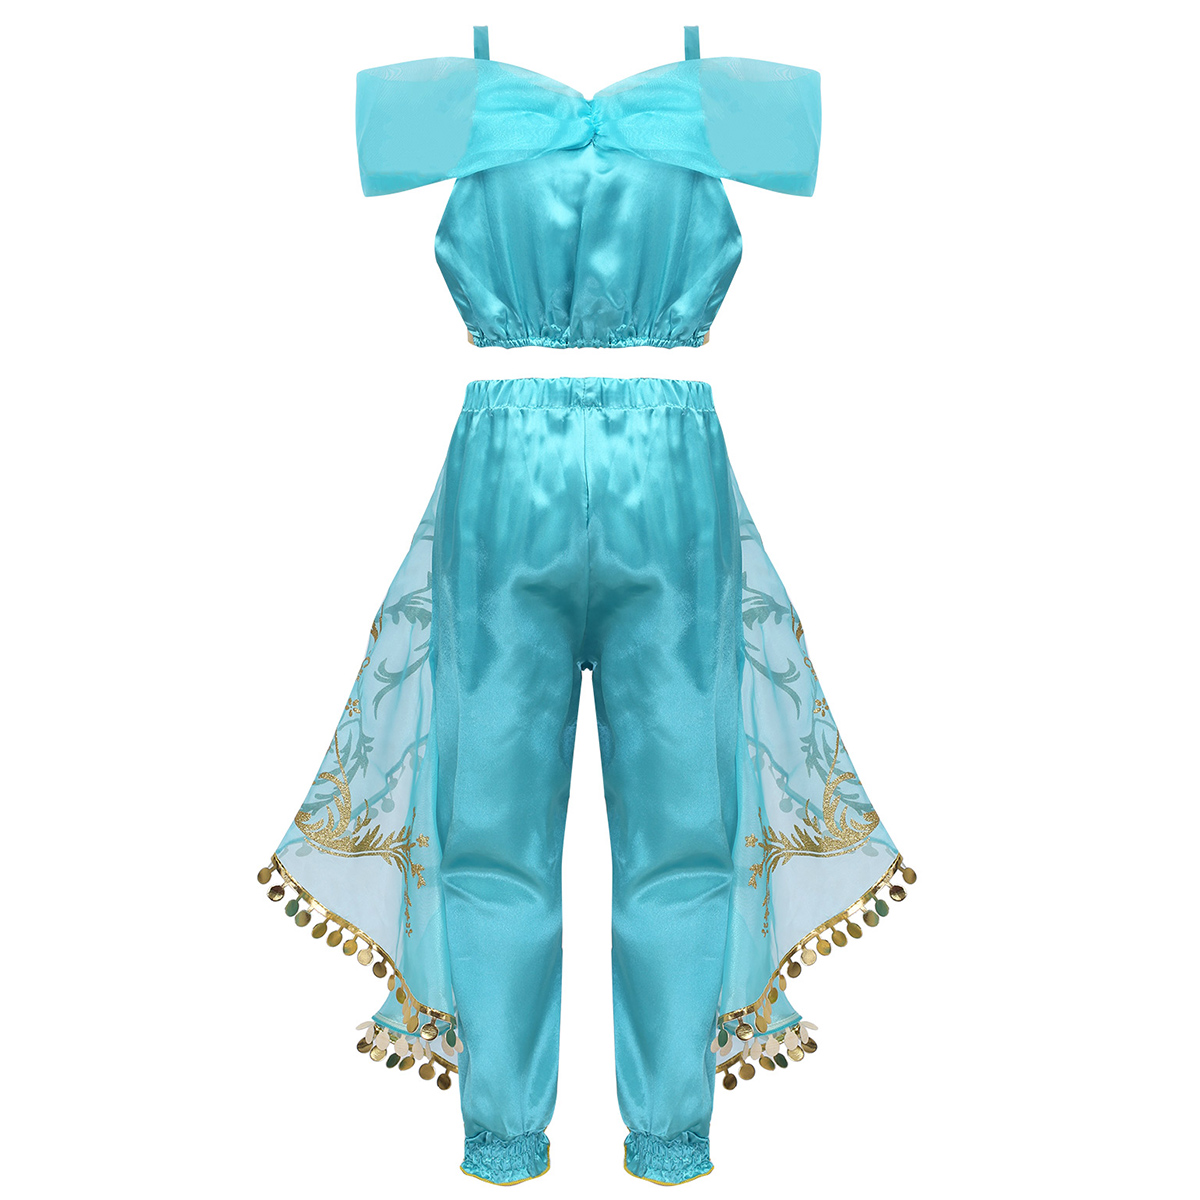 Image 2 - Kids Girls Princess Glittery Sequins Rhinestone Costume Outfit Off Shoulder Crop Top with Pants Halloween Cosplay Party Dress Up-in Girls Costumes from Novelty & Special Use